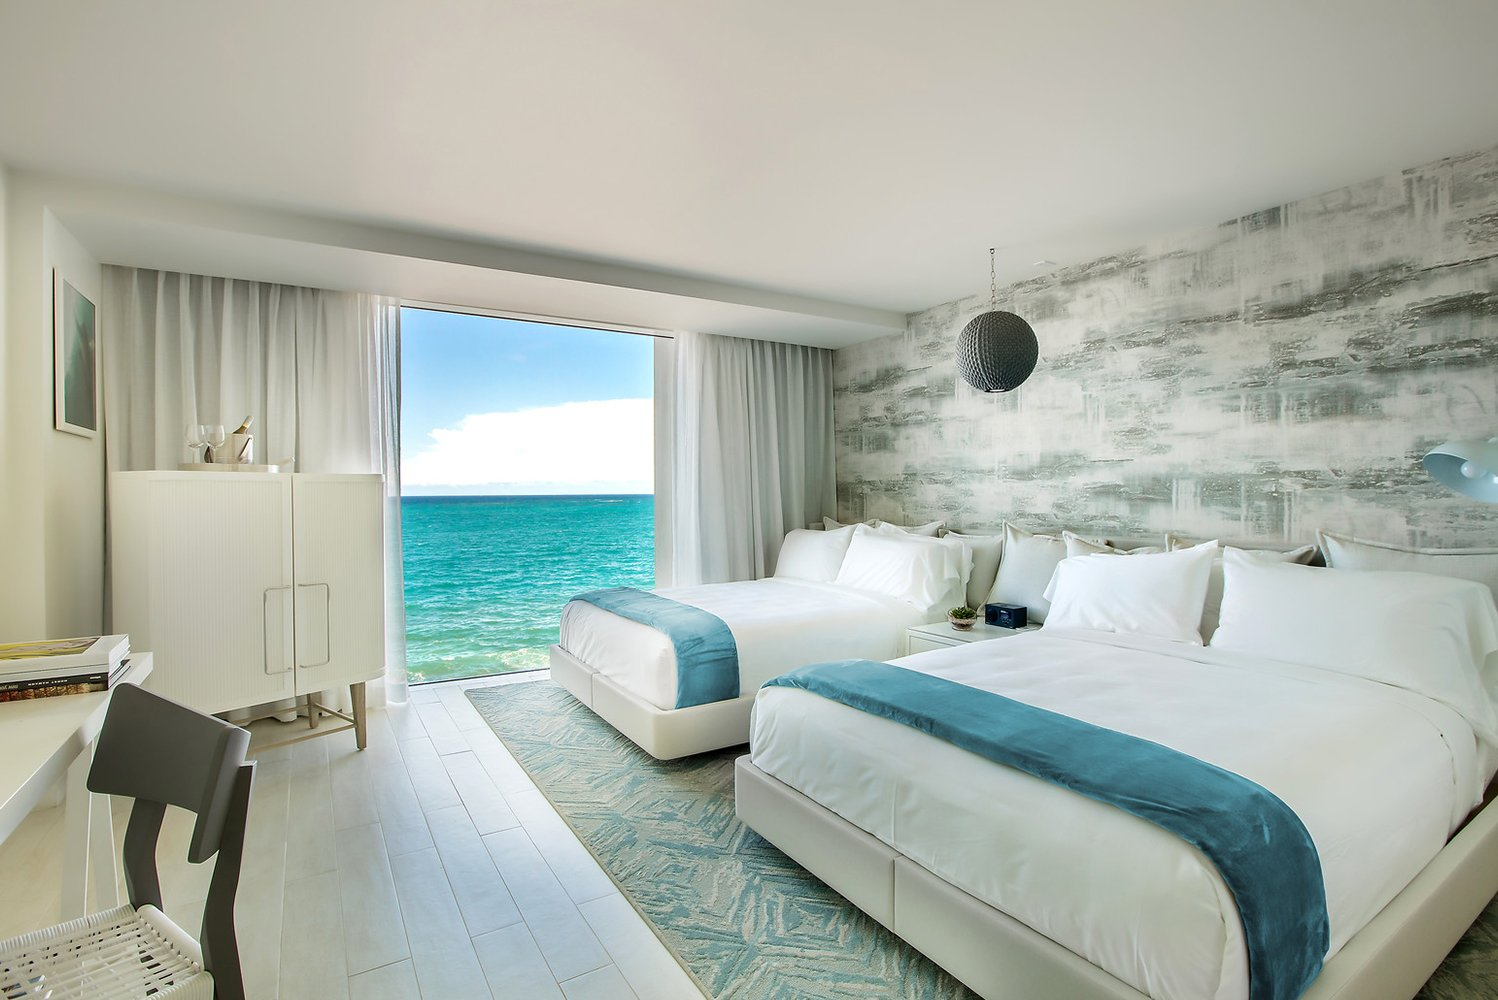 The property will have 96 rooms that will have floor-to-ceiling windows to offer views of the Atlantic Ocean or the neighboring Laguna del Condado.